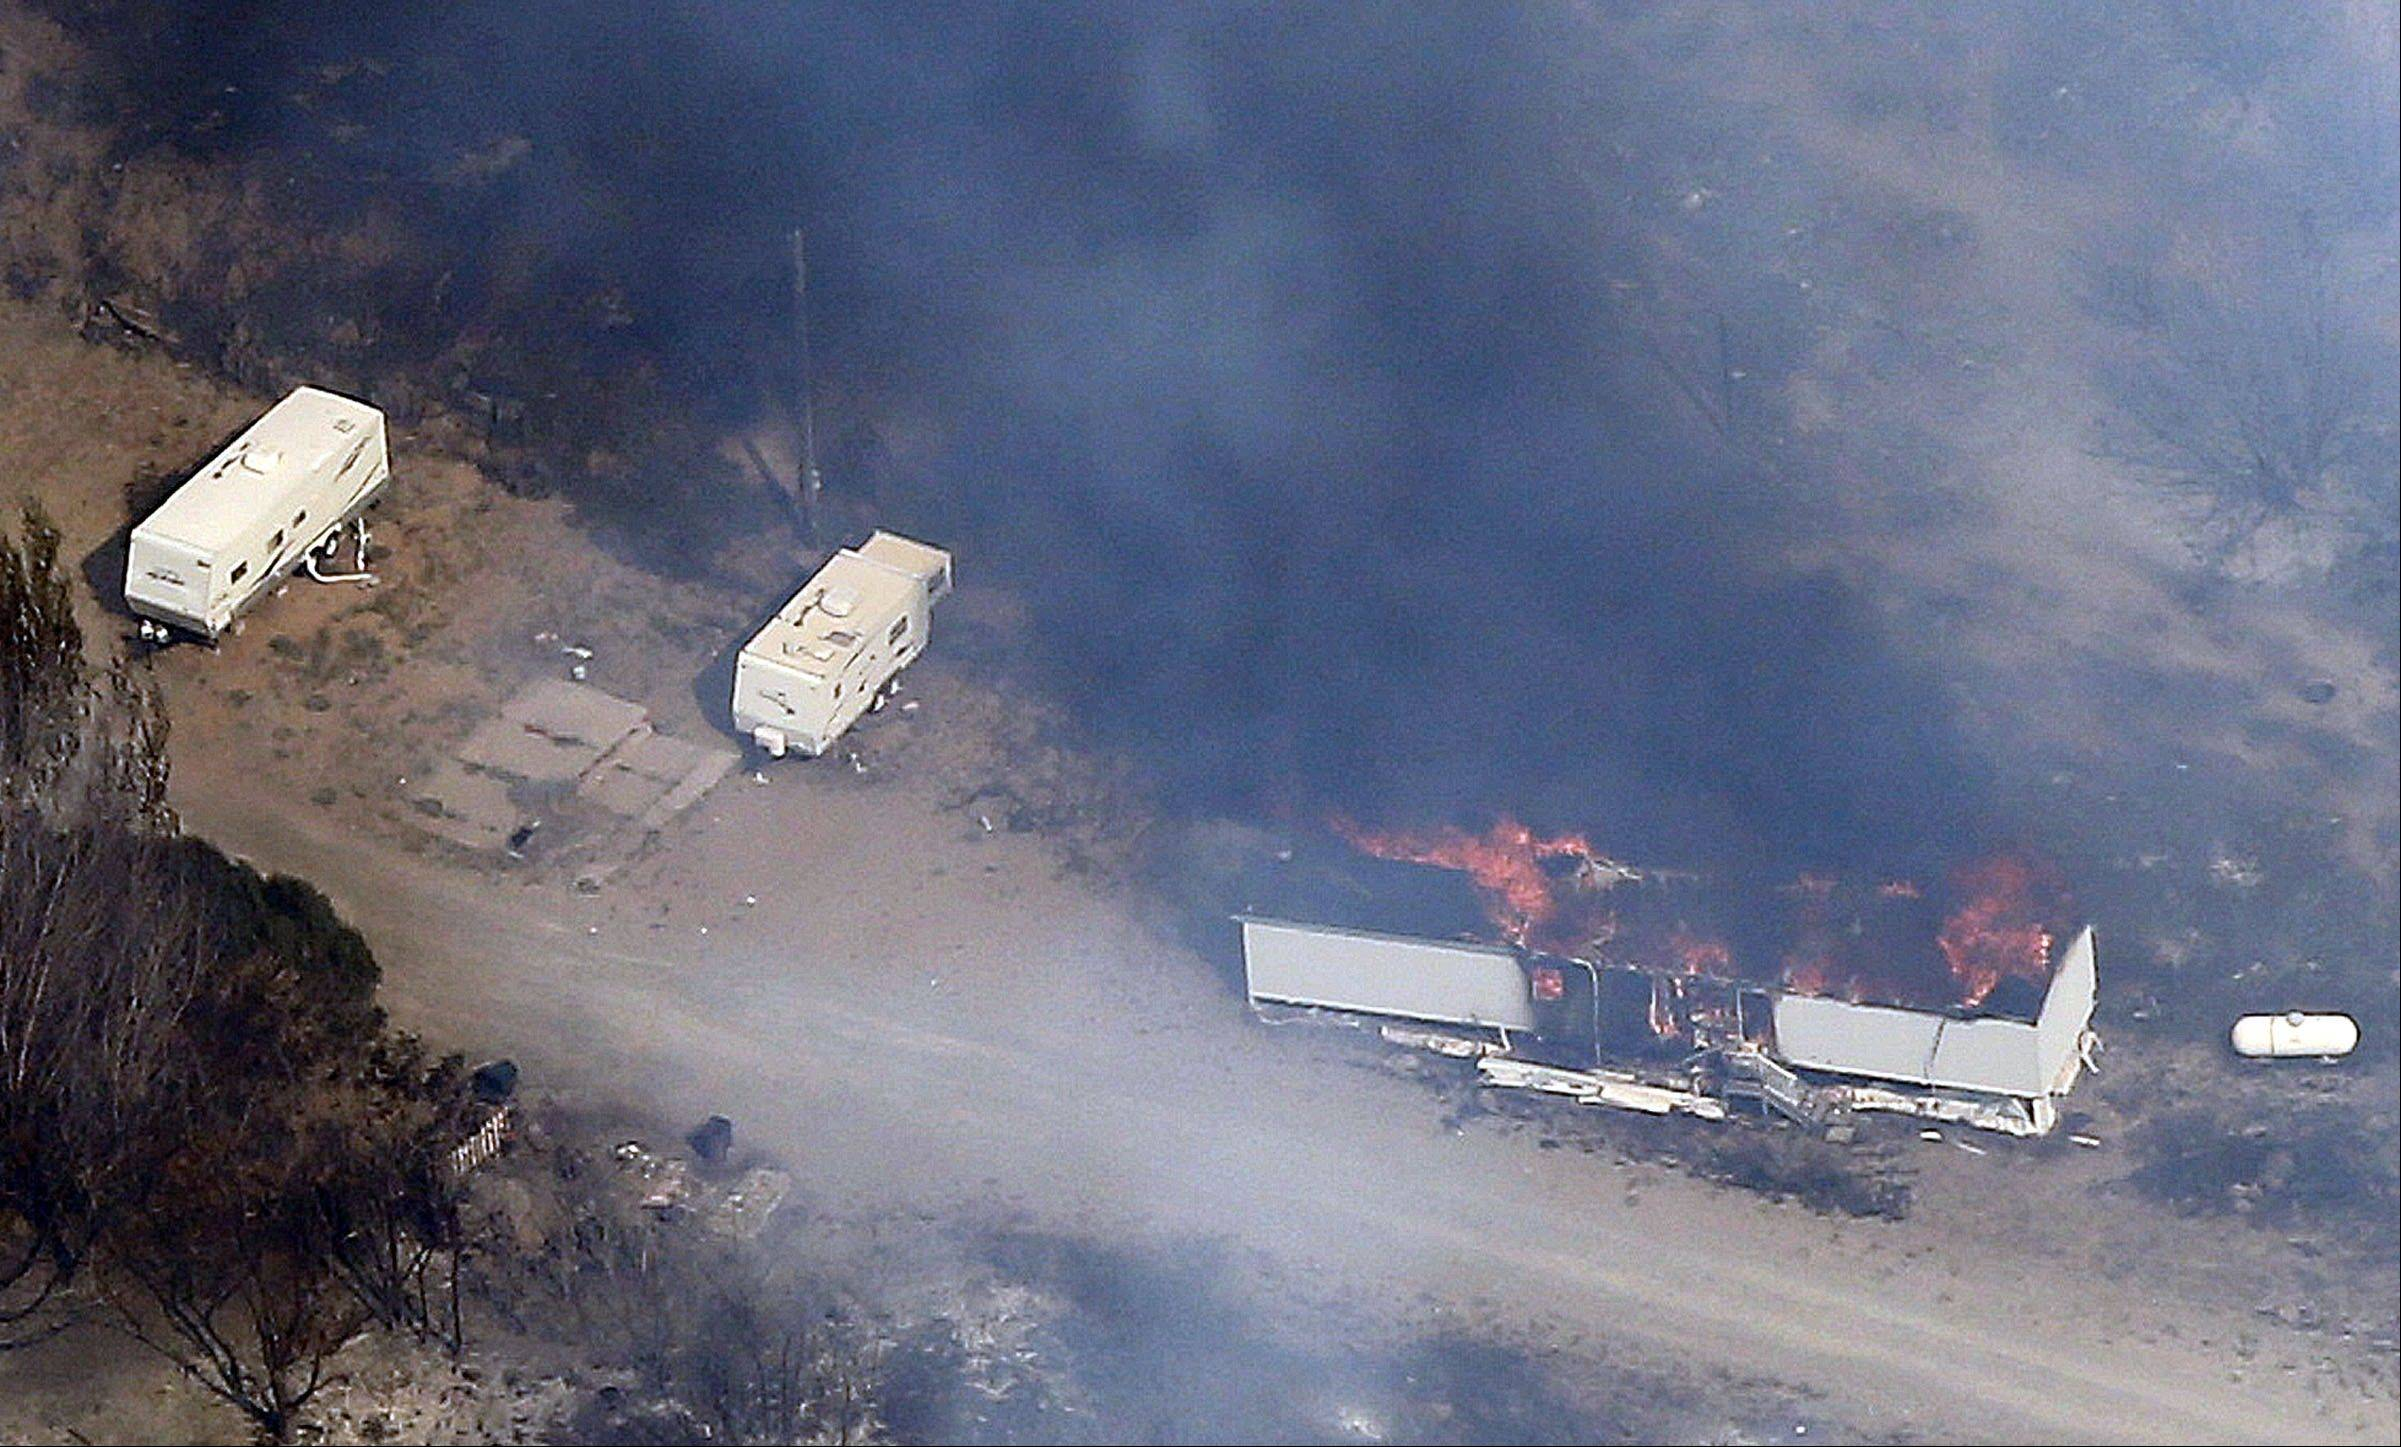 The Patch Springs Fire burns a trailer in the Stansbury Mountains of Utah, Friday.